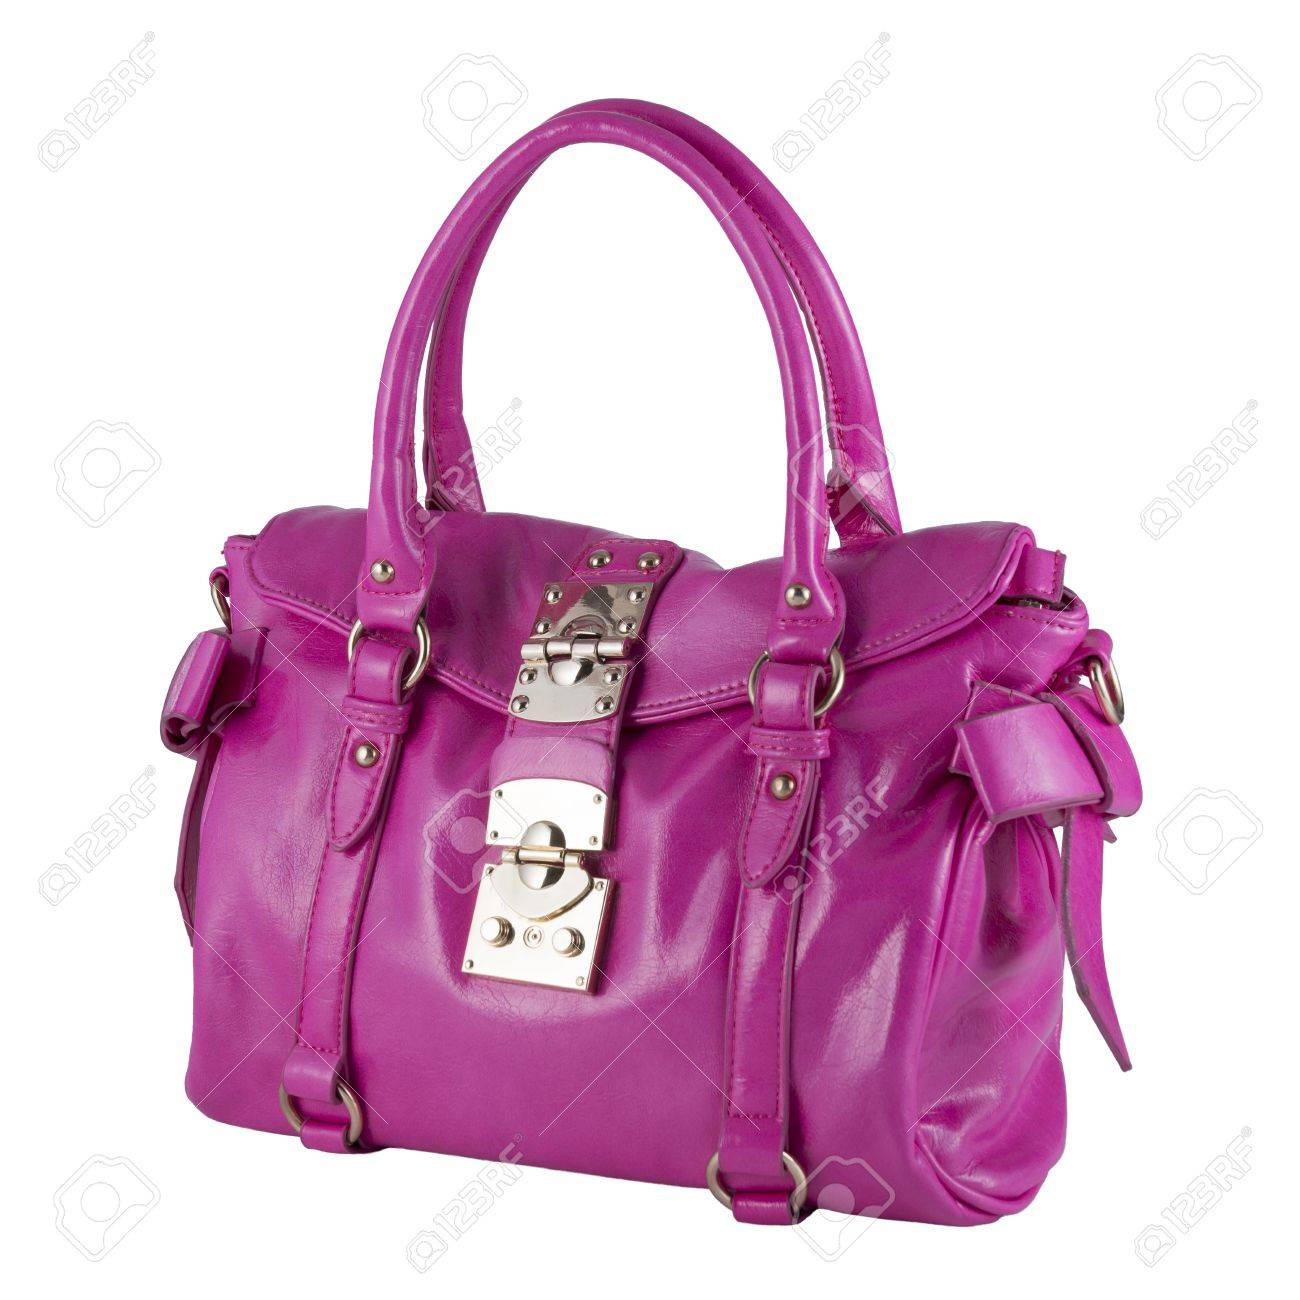 Woman S Handbag Pink Color Isolated Over White Stock Photo Picture